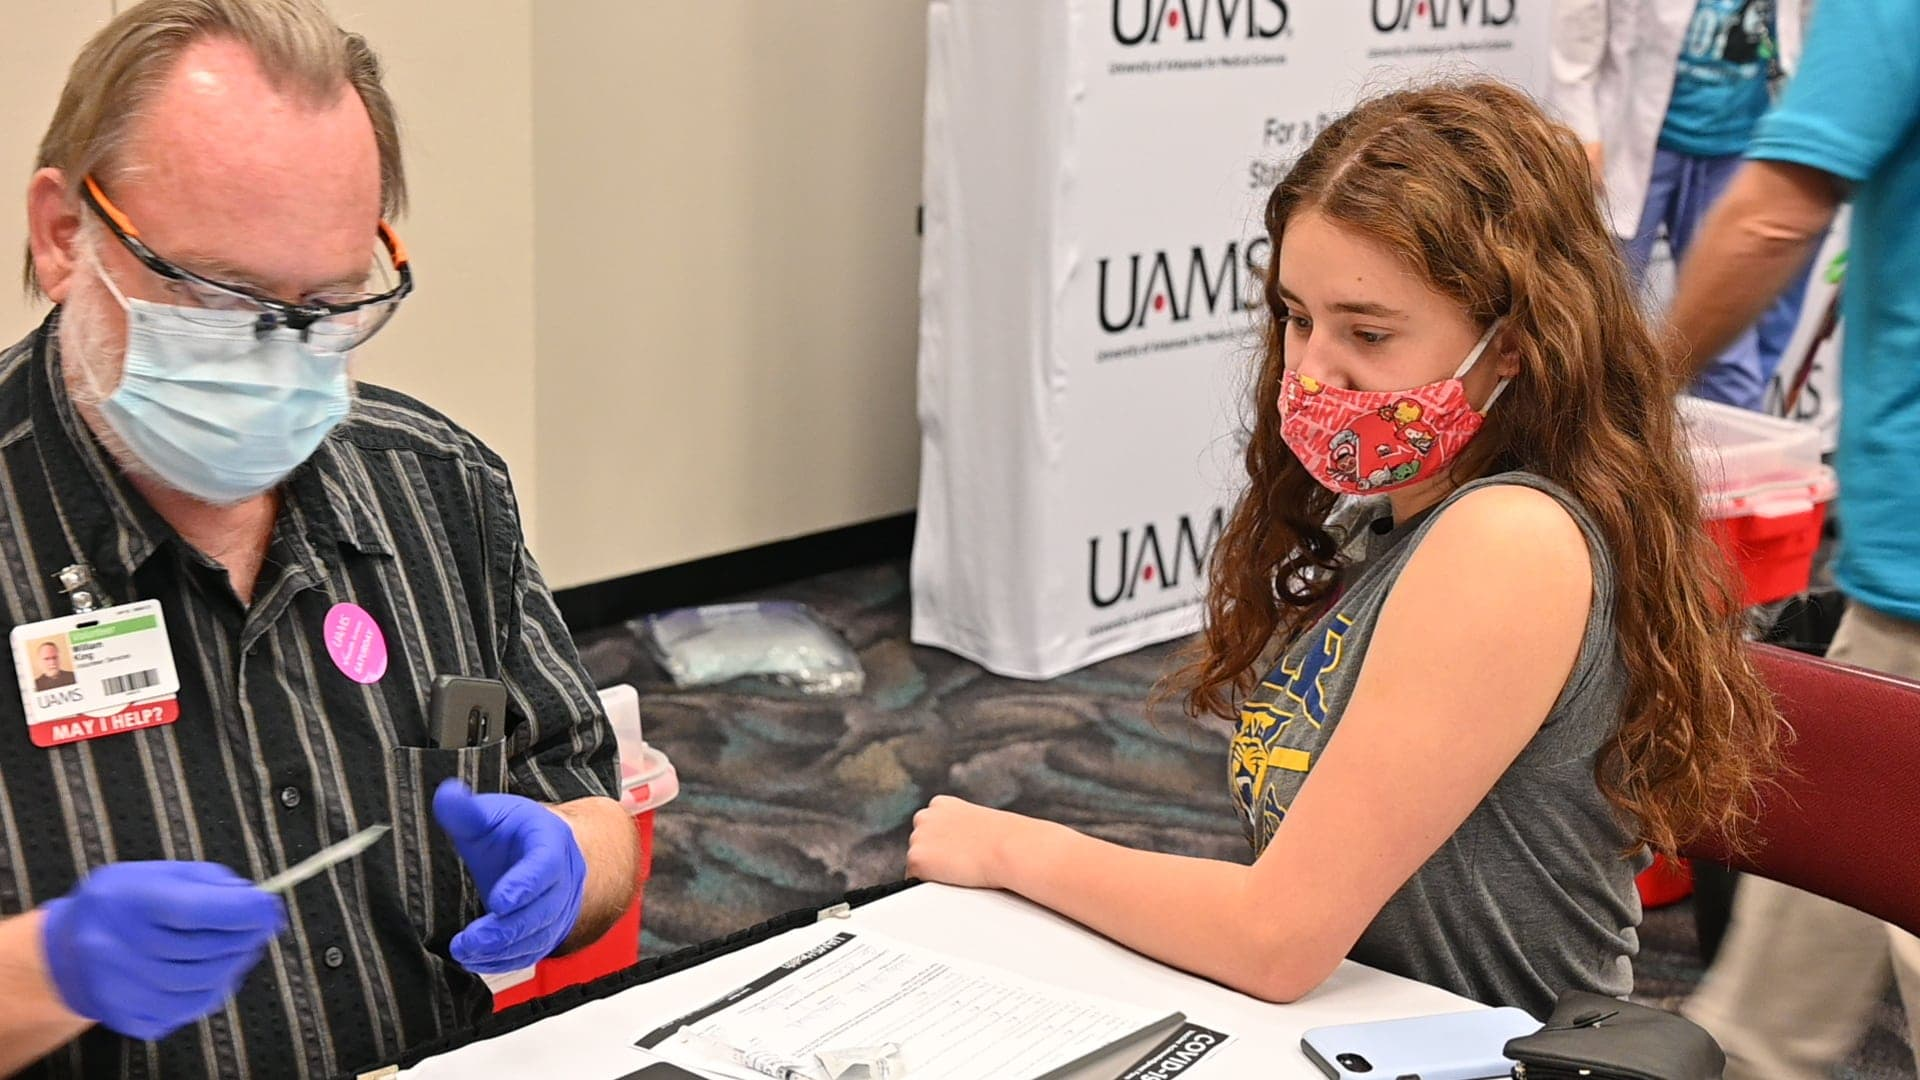 Ainsley Albright, 17, gets her first dose of the Pfizer vaccine at a COVID-19 Community Vaccination Clinic on April 10. Starting Thursday, UAMS will offer the vaccine to children ages 12 and up.